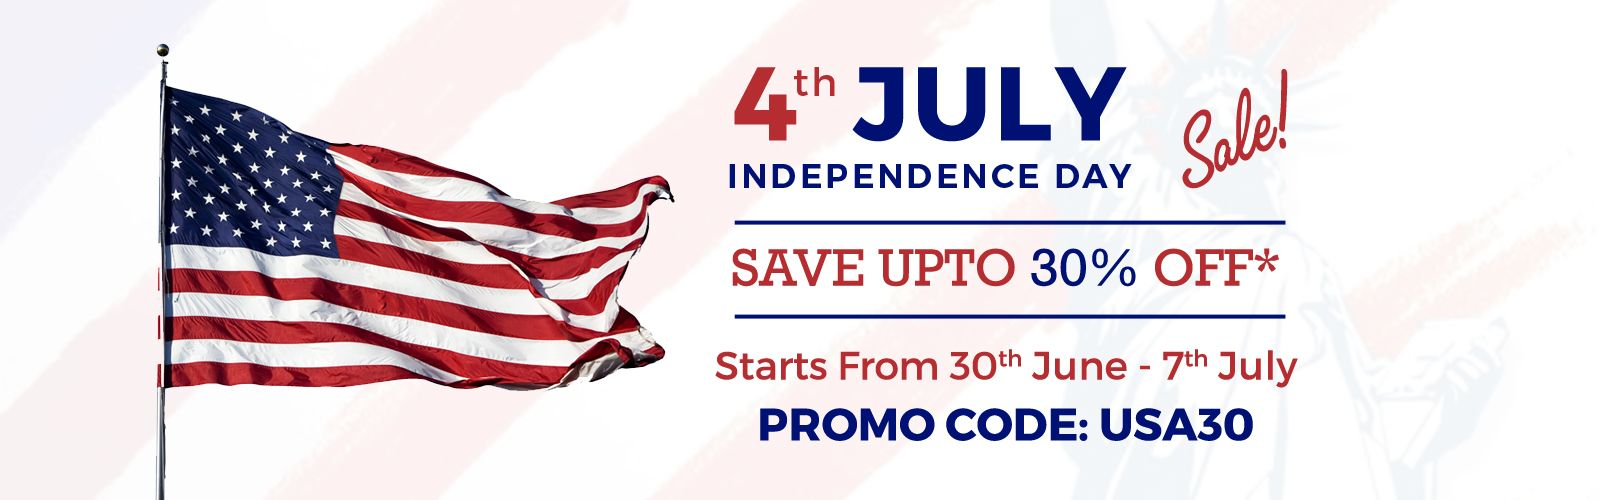 Amazon Clone Script Independence Day